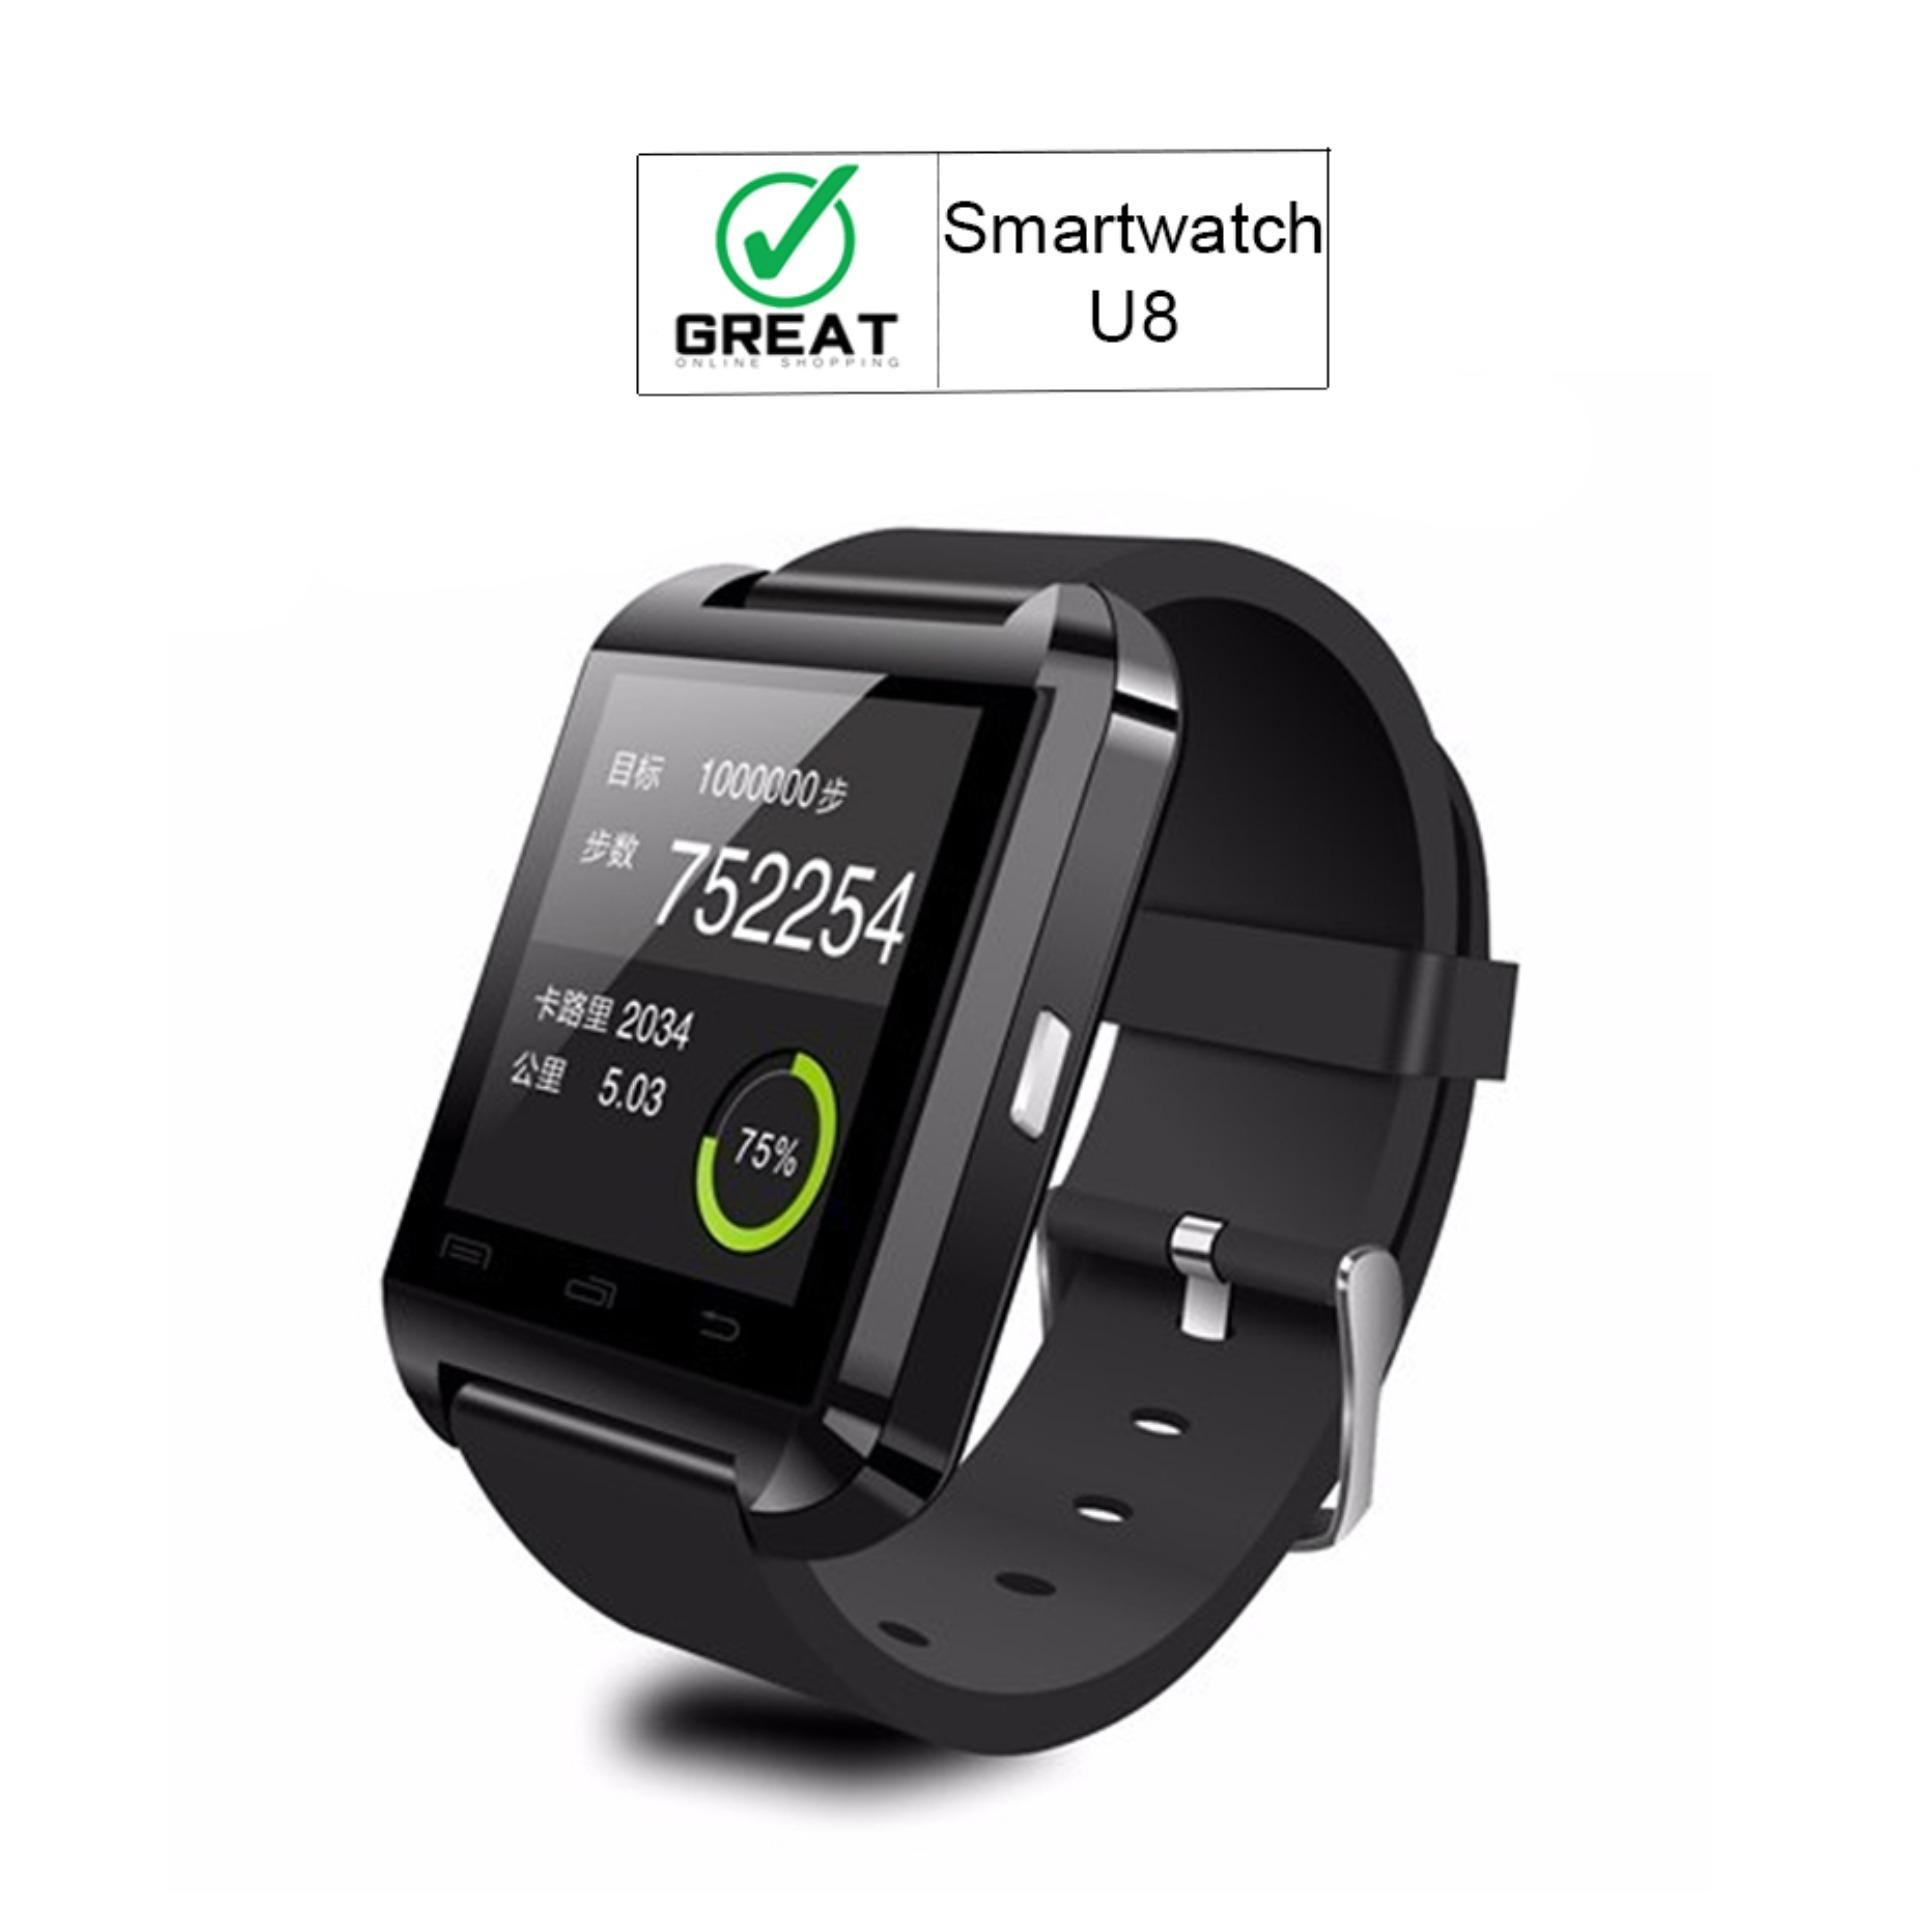 Great U8 Smartwatch For Android Rubber Strap - Hitam